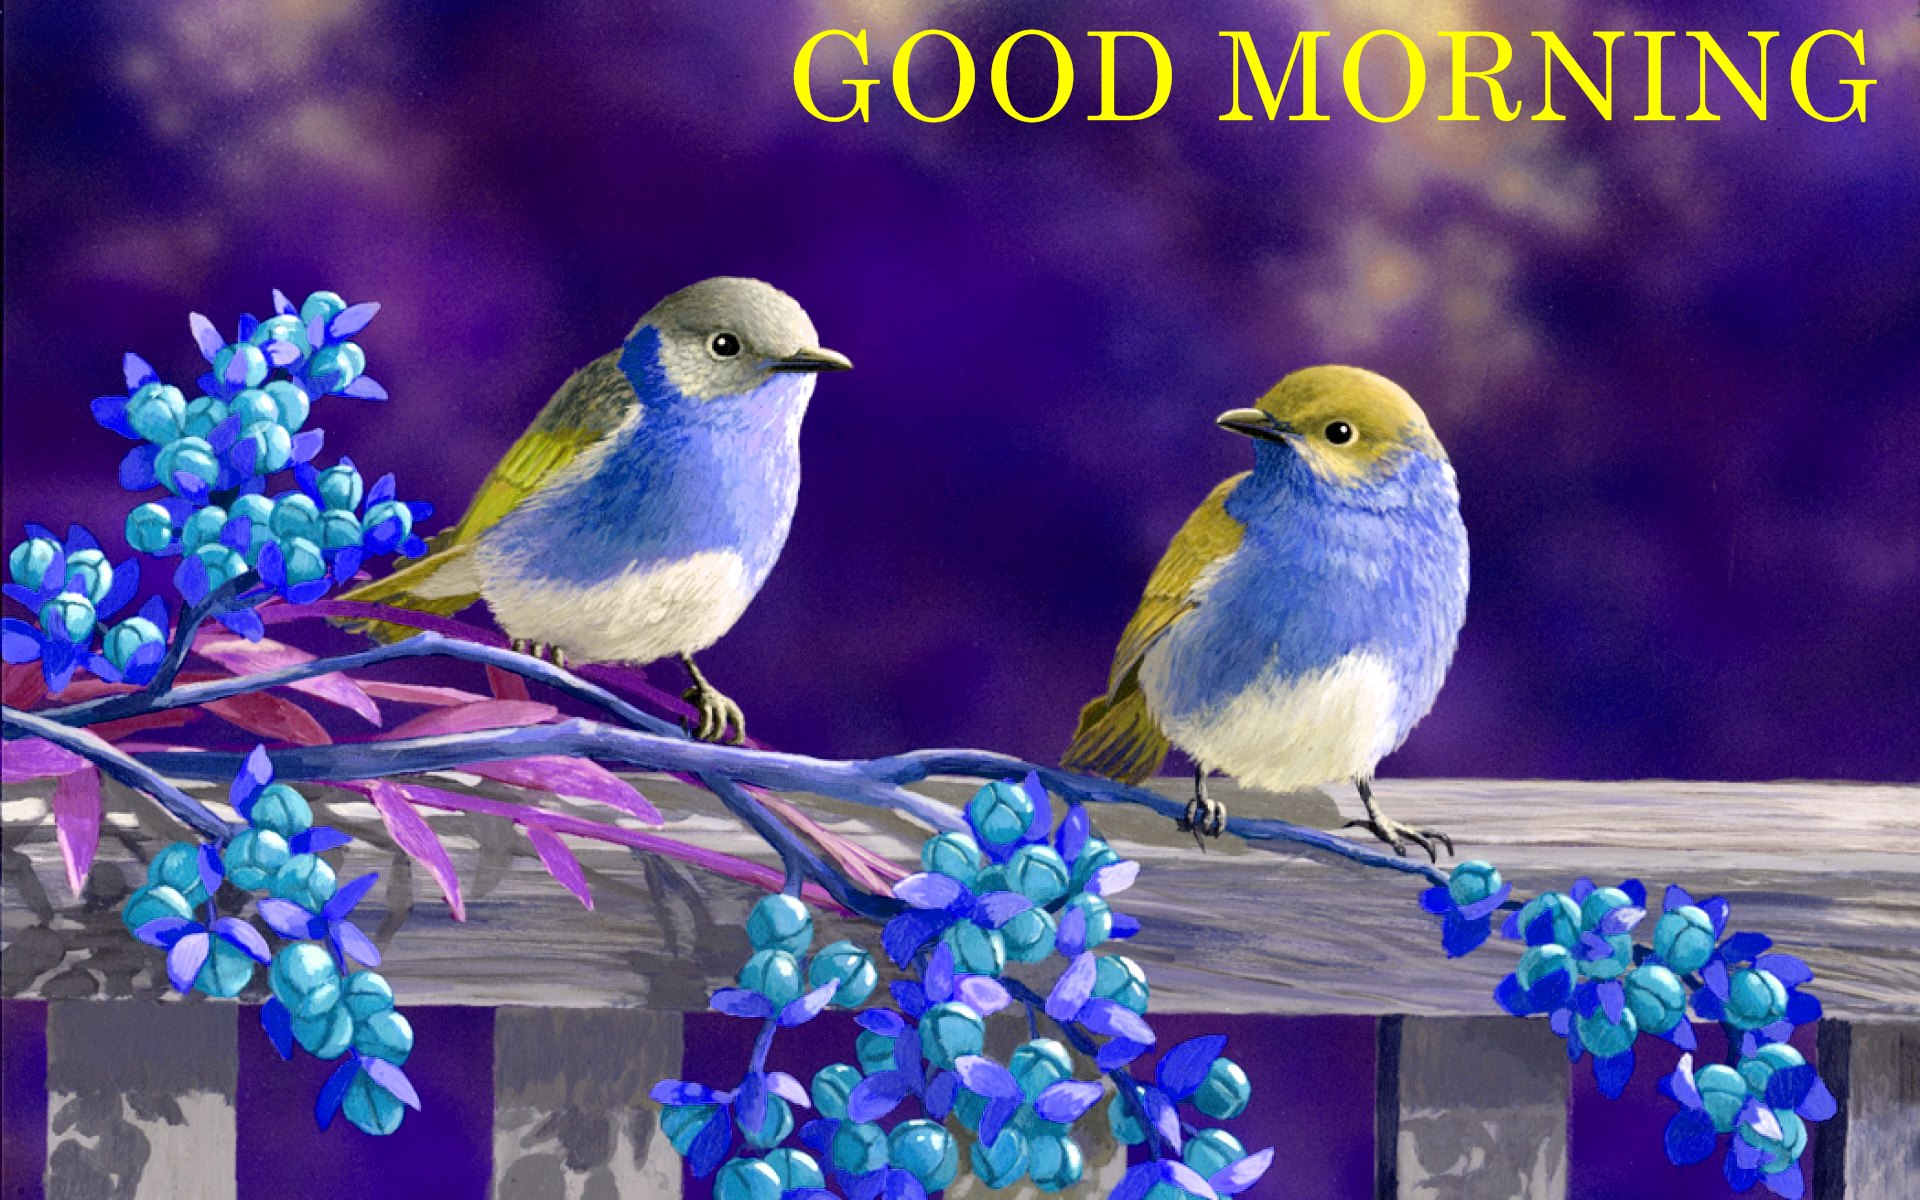 Good Morning Wishes With Birds Pictures, Images - Page 23